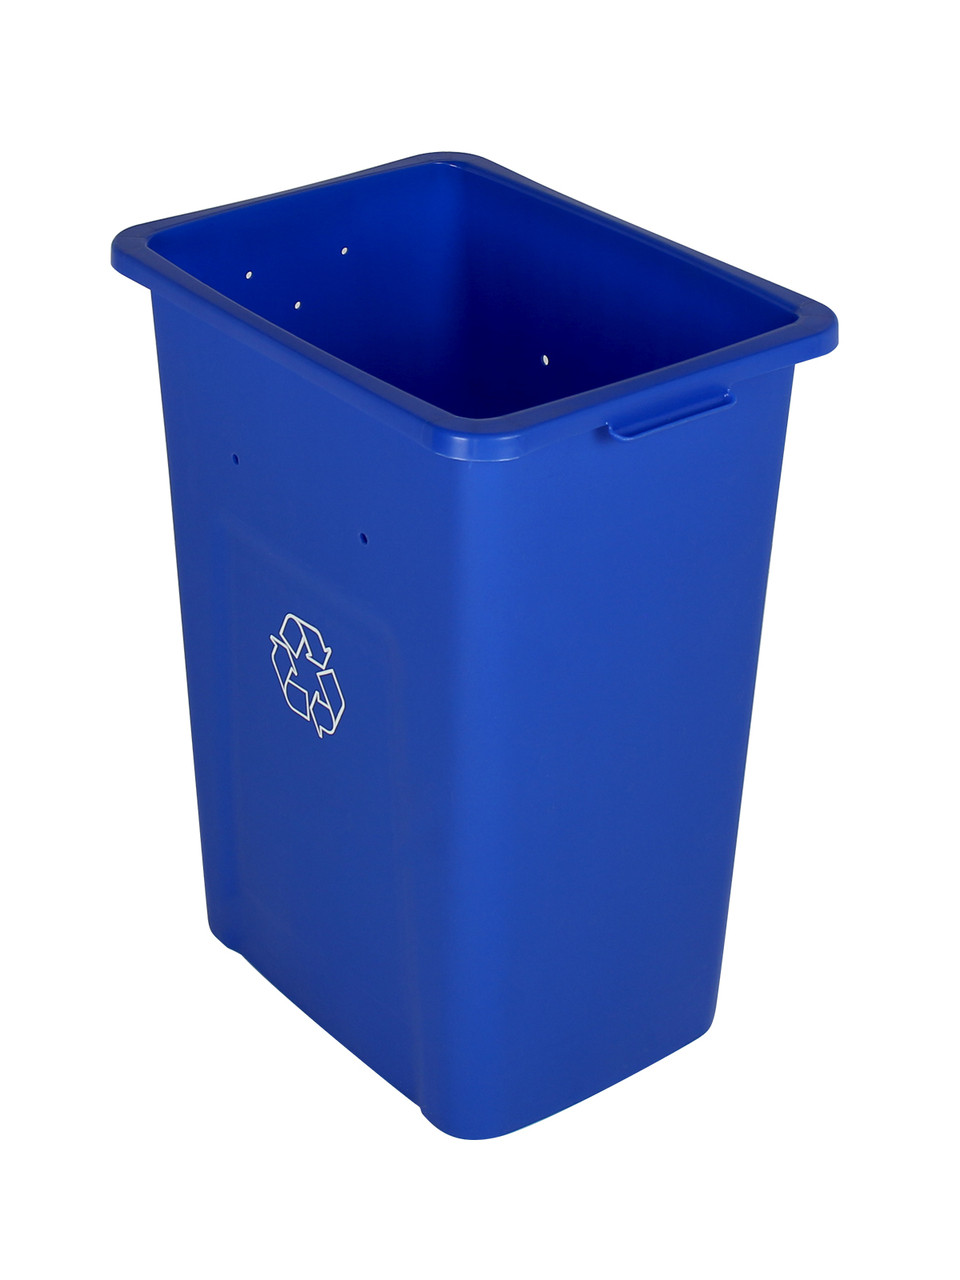 28 Gallon Extra Large Home & Office Recycling Bin Blue